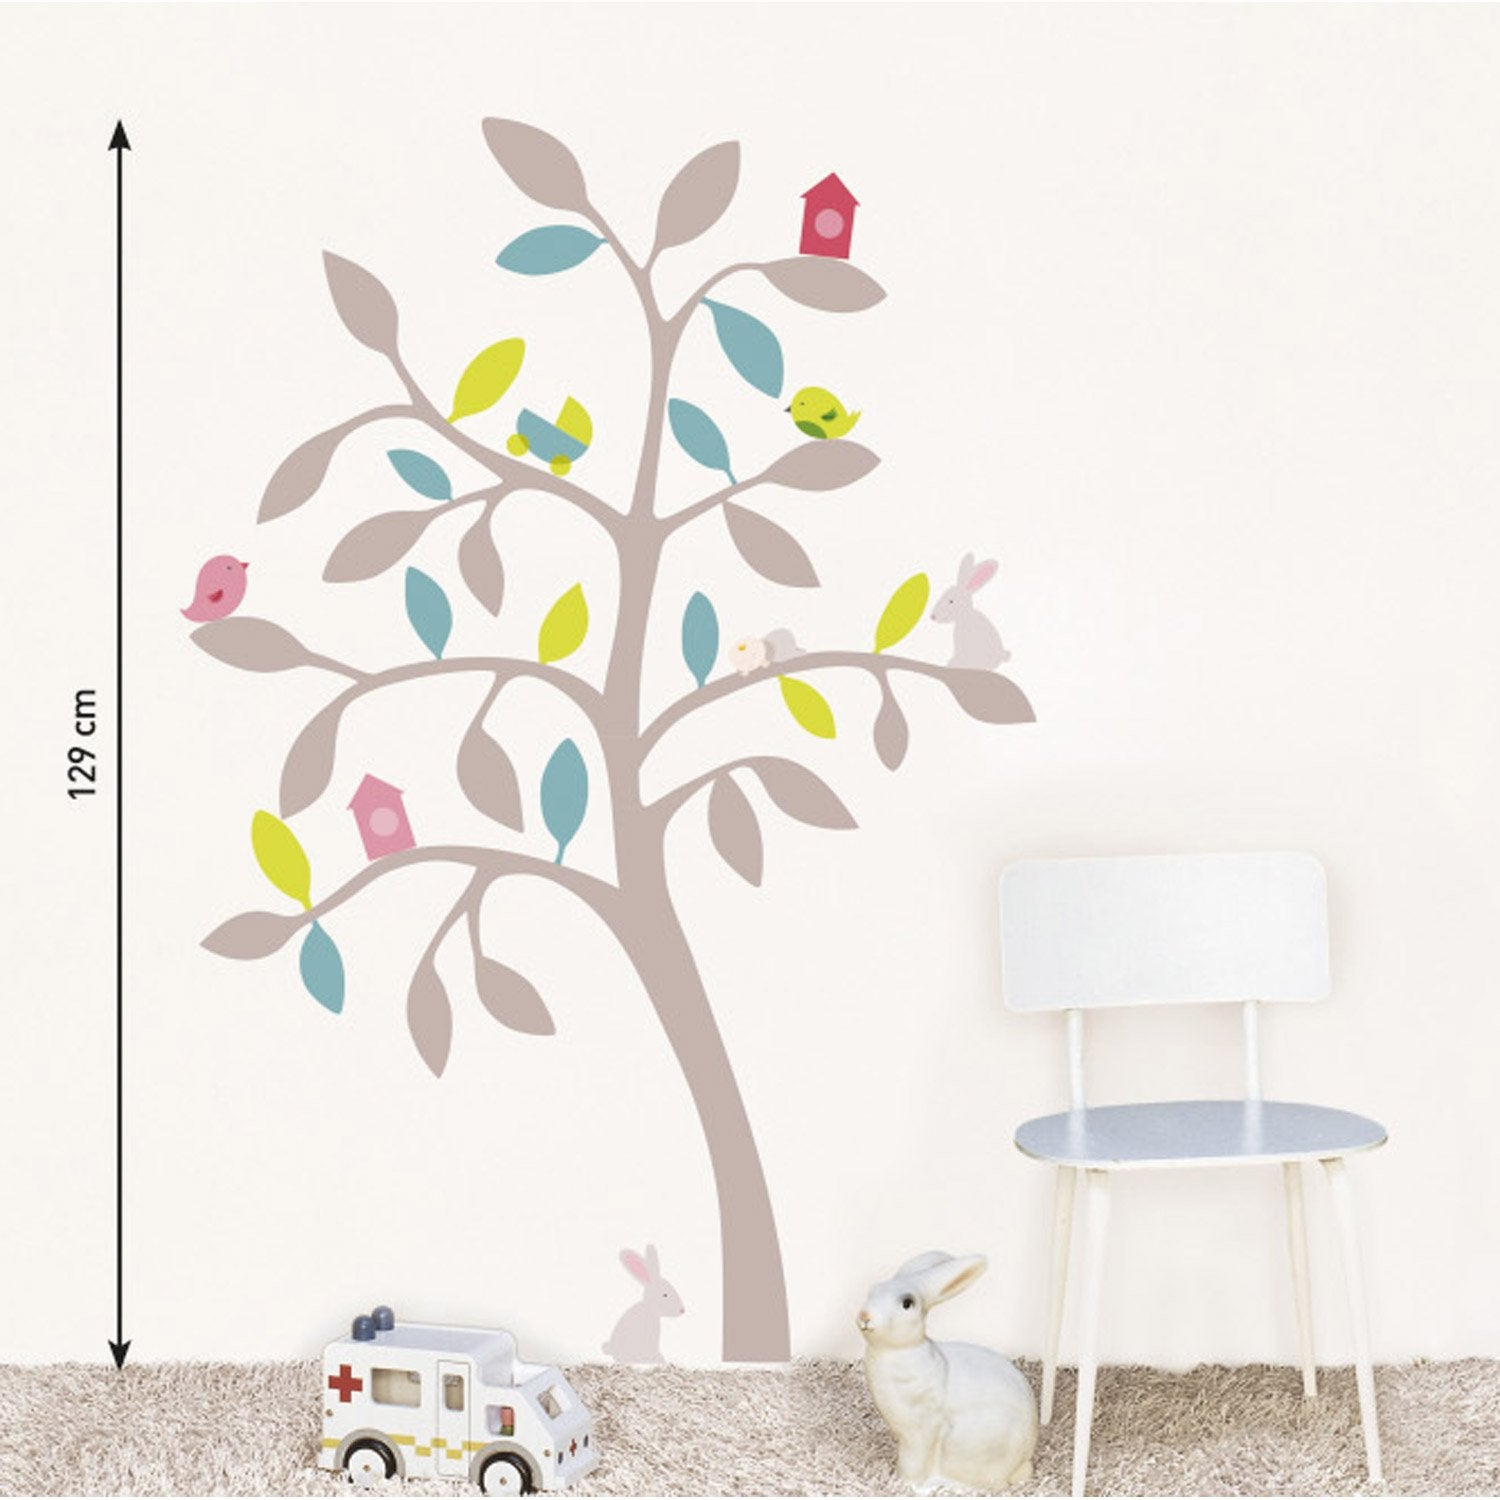 Sticker printemps 49 cm x 69 5 cm leroy merlin - Leroy merlin stickers muraux ...